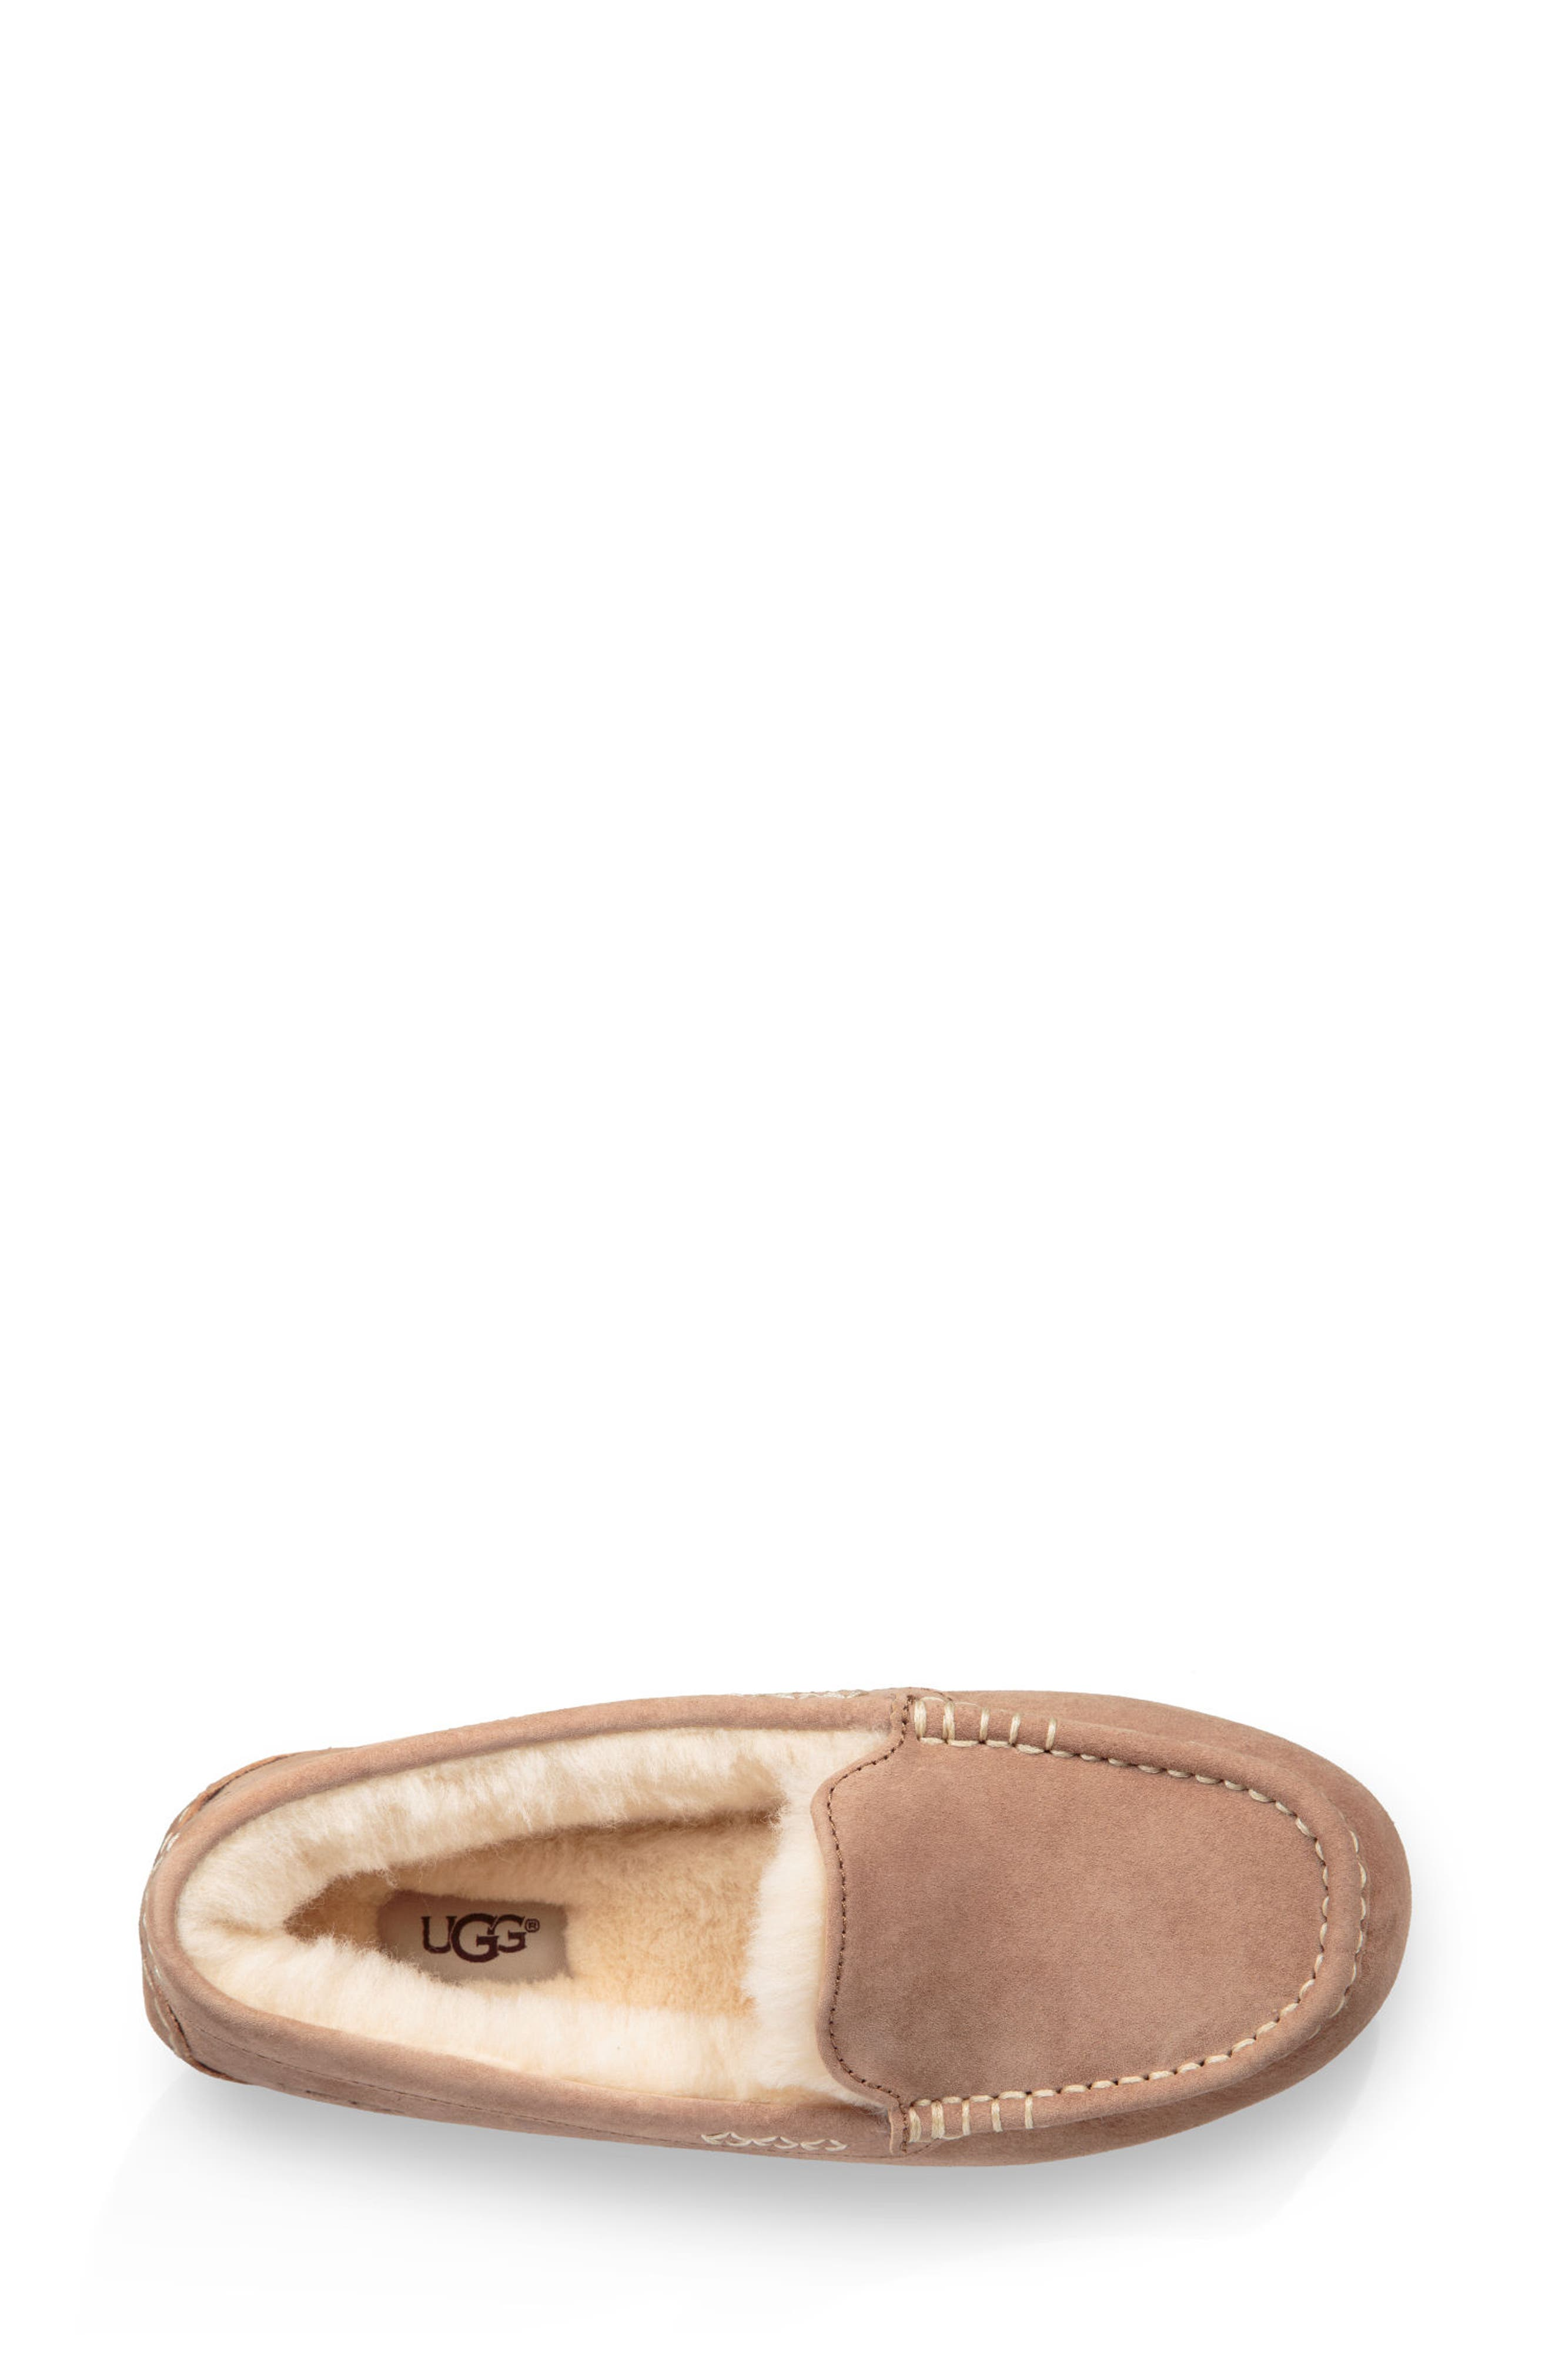 Ansley Water Resistant Slipper,                             Alternate thumbnail 4, color,                             Fawn Leather